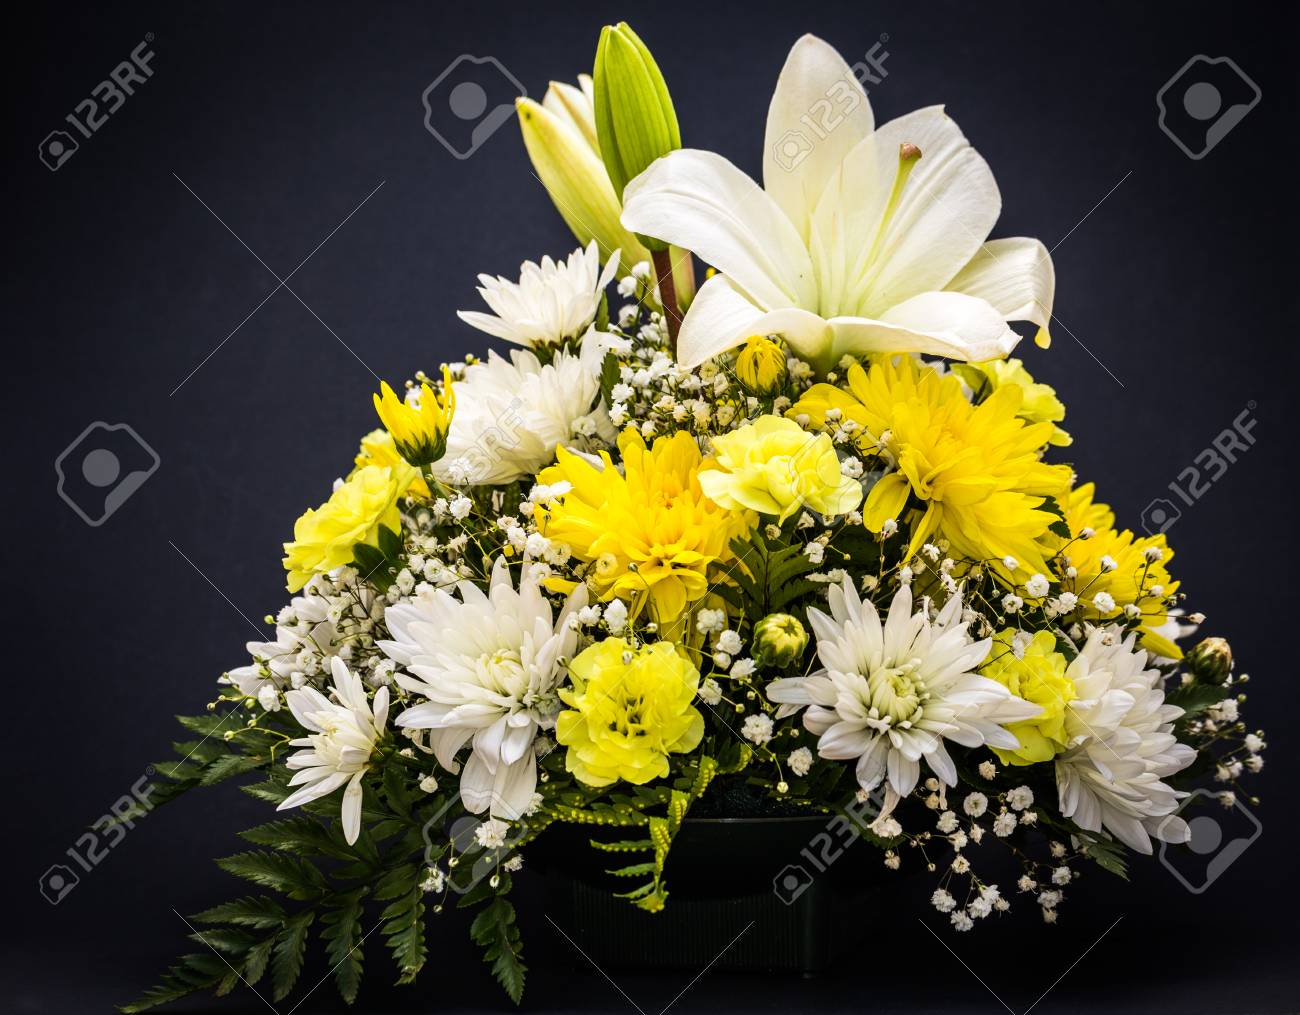 Bouquet Fiori Gialli.A Bouquet Of Yellow And White Flowers Set On A Black Background